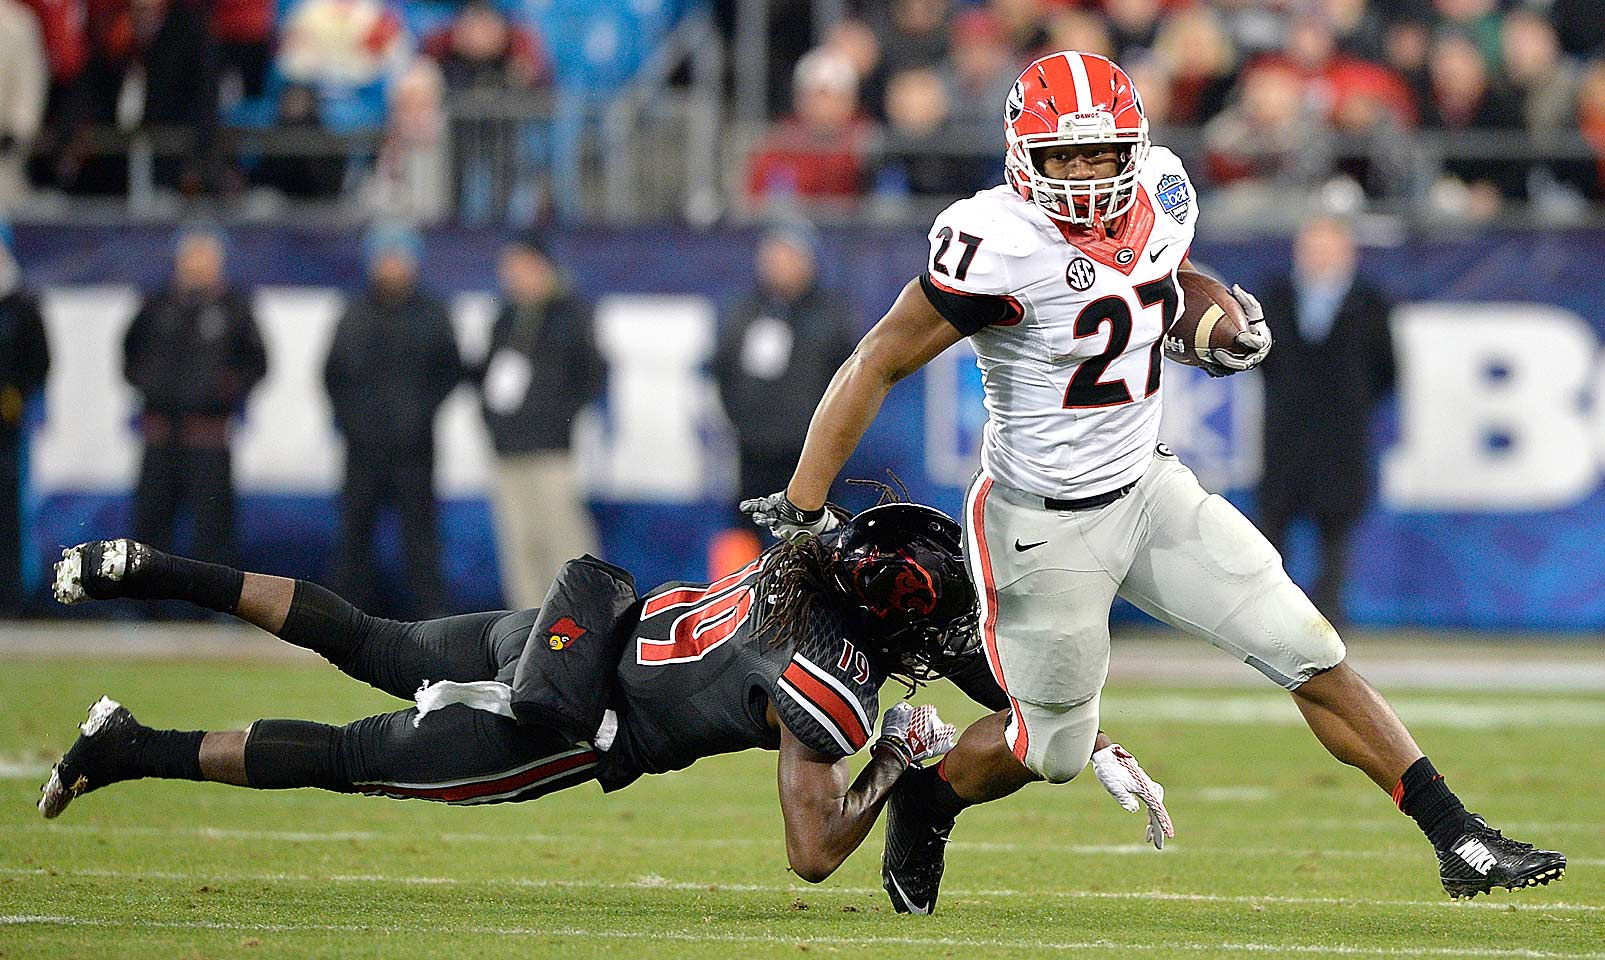 Chubb emerged as a consistent force behind Todd Gurley, powering through defenders with his thick frame. As his workload increased with Gurley's suspension and injury, Chubb averaged over seven yards per carry on his way to 1,547 yards.